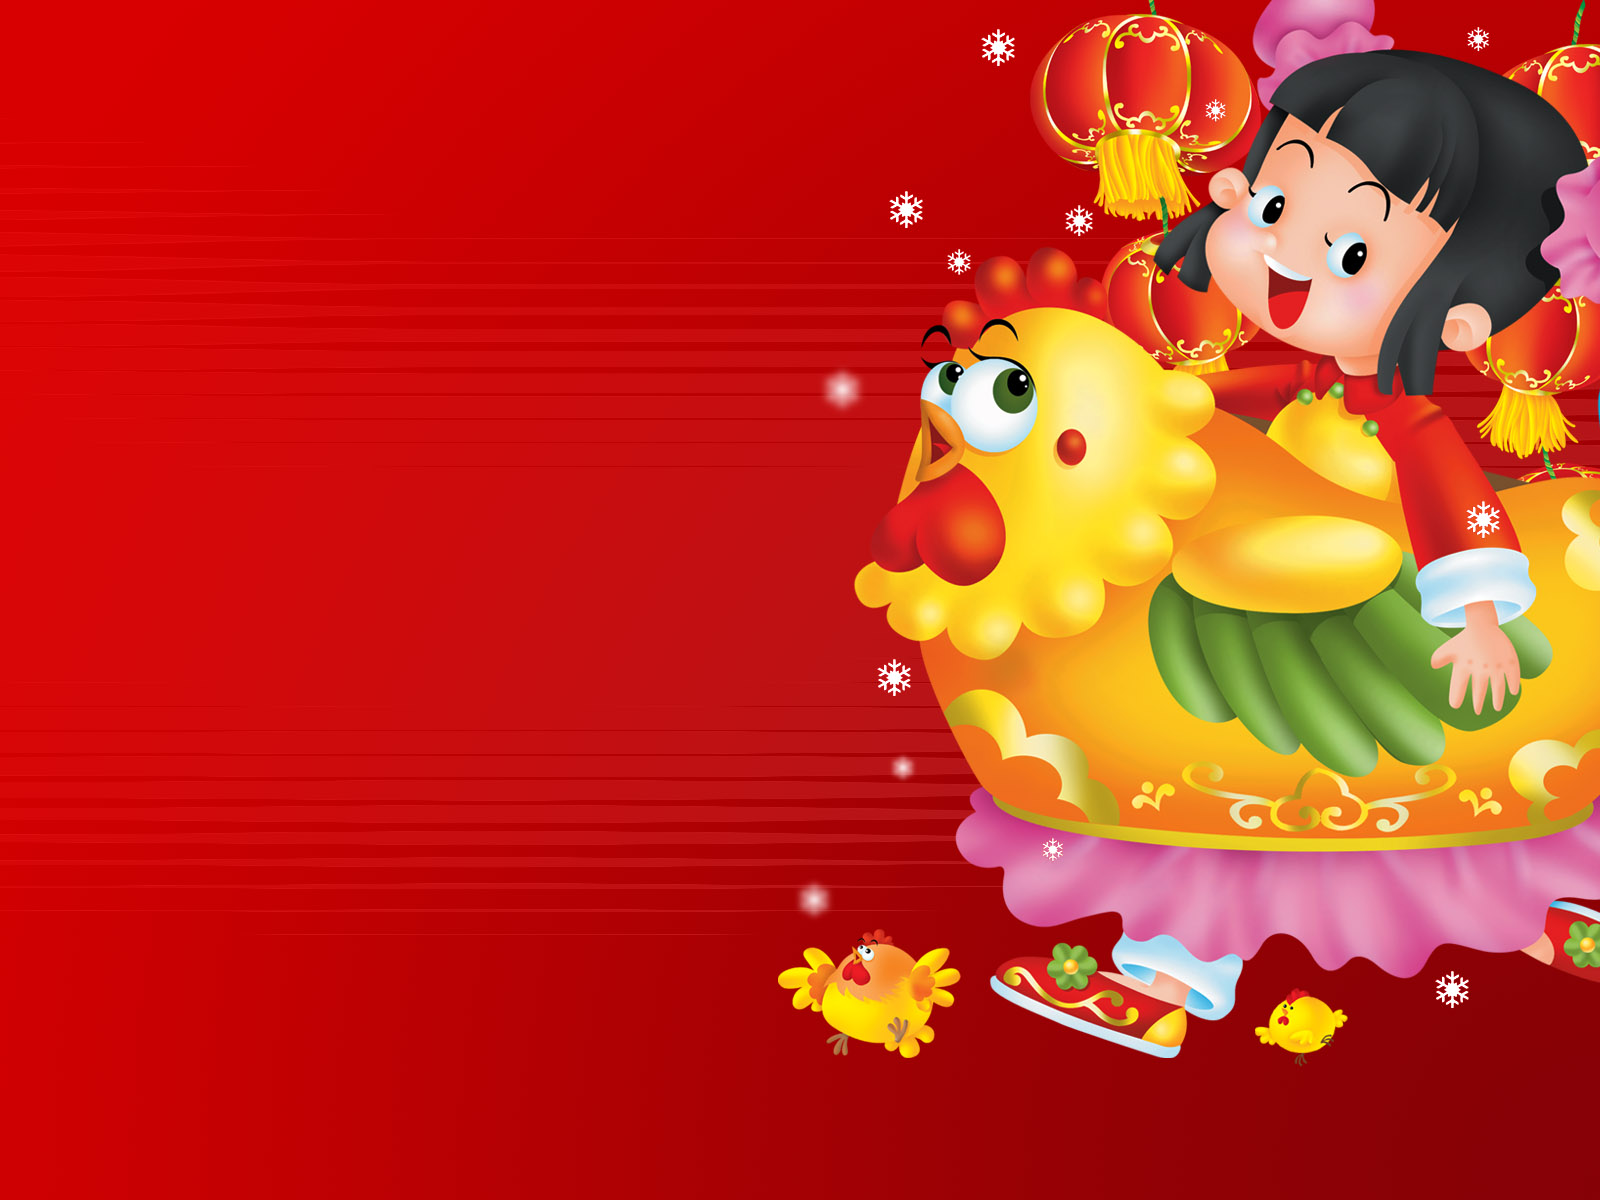 Lunar New Year Background Wallpaper High Definition High Quality